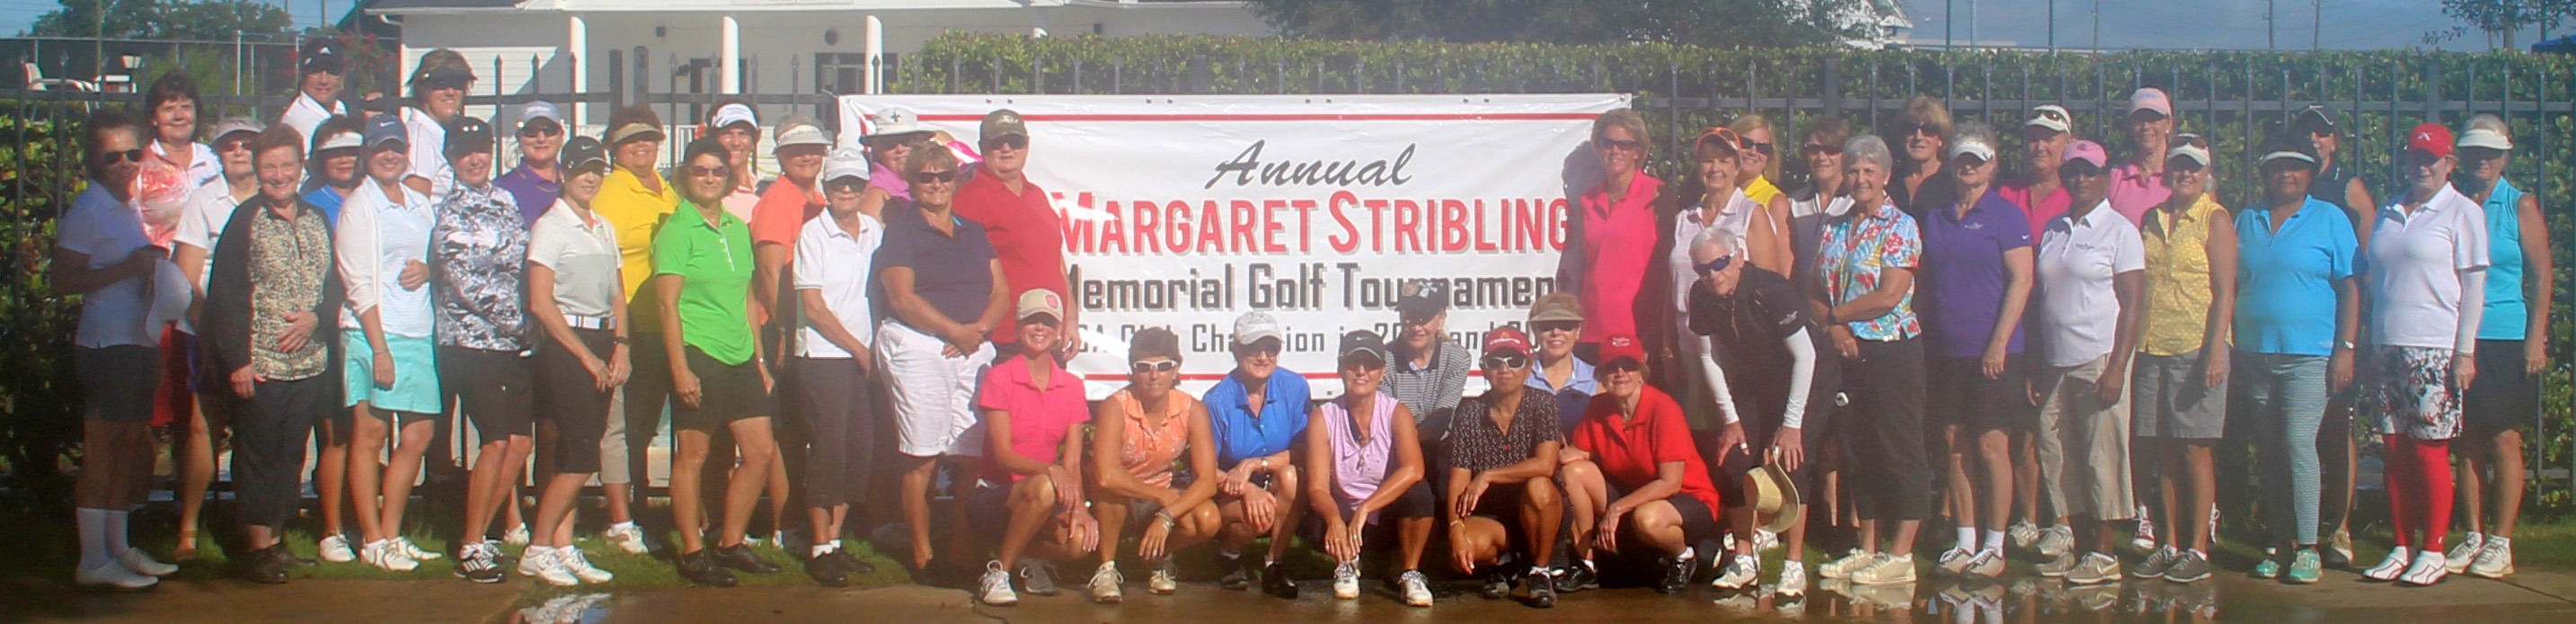 2015 Margaret Stribling Tournament